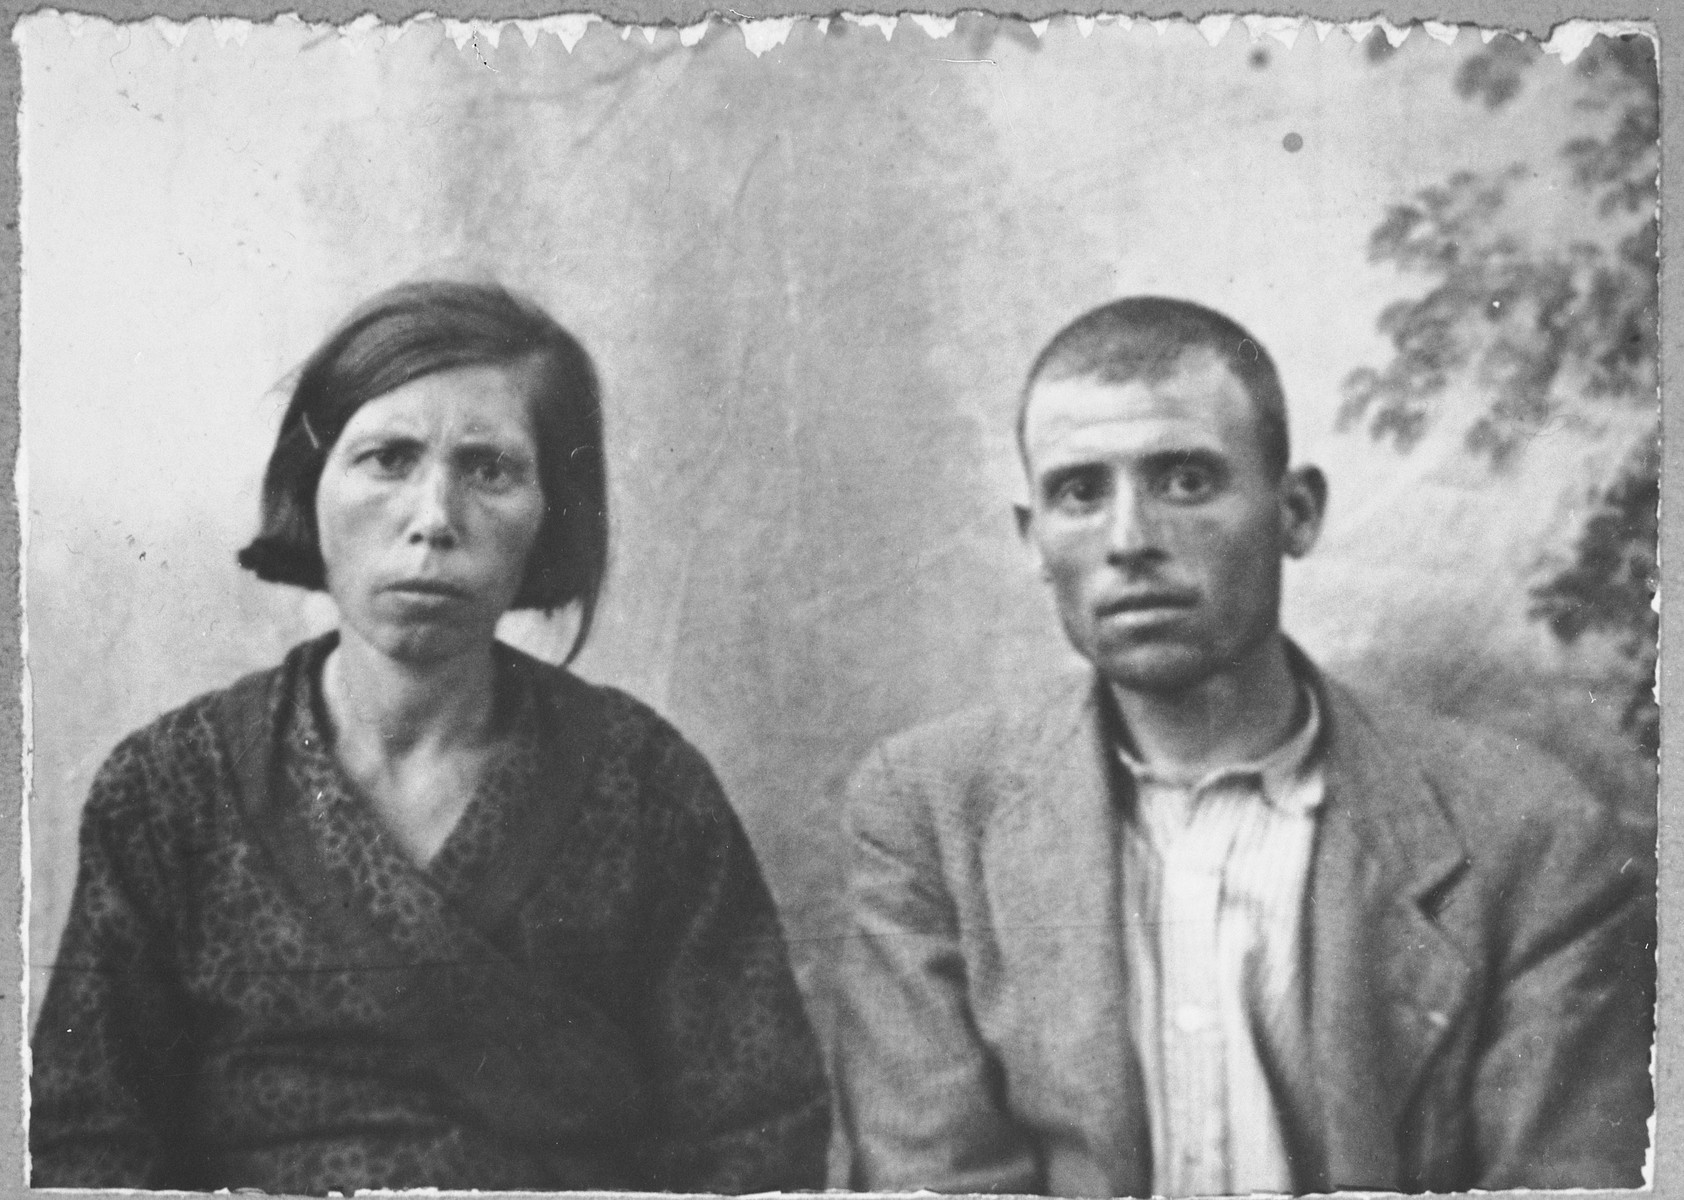 Portrait of Solomon (A.) Kalderon and his wife, Buena.  He was a glazier.  They lived at Mitrovatska 3-5 in Bitola.